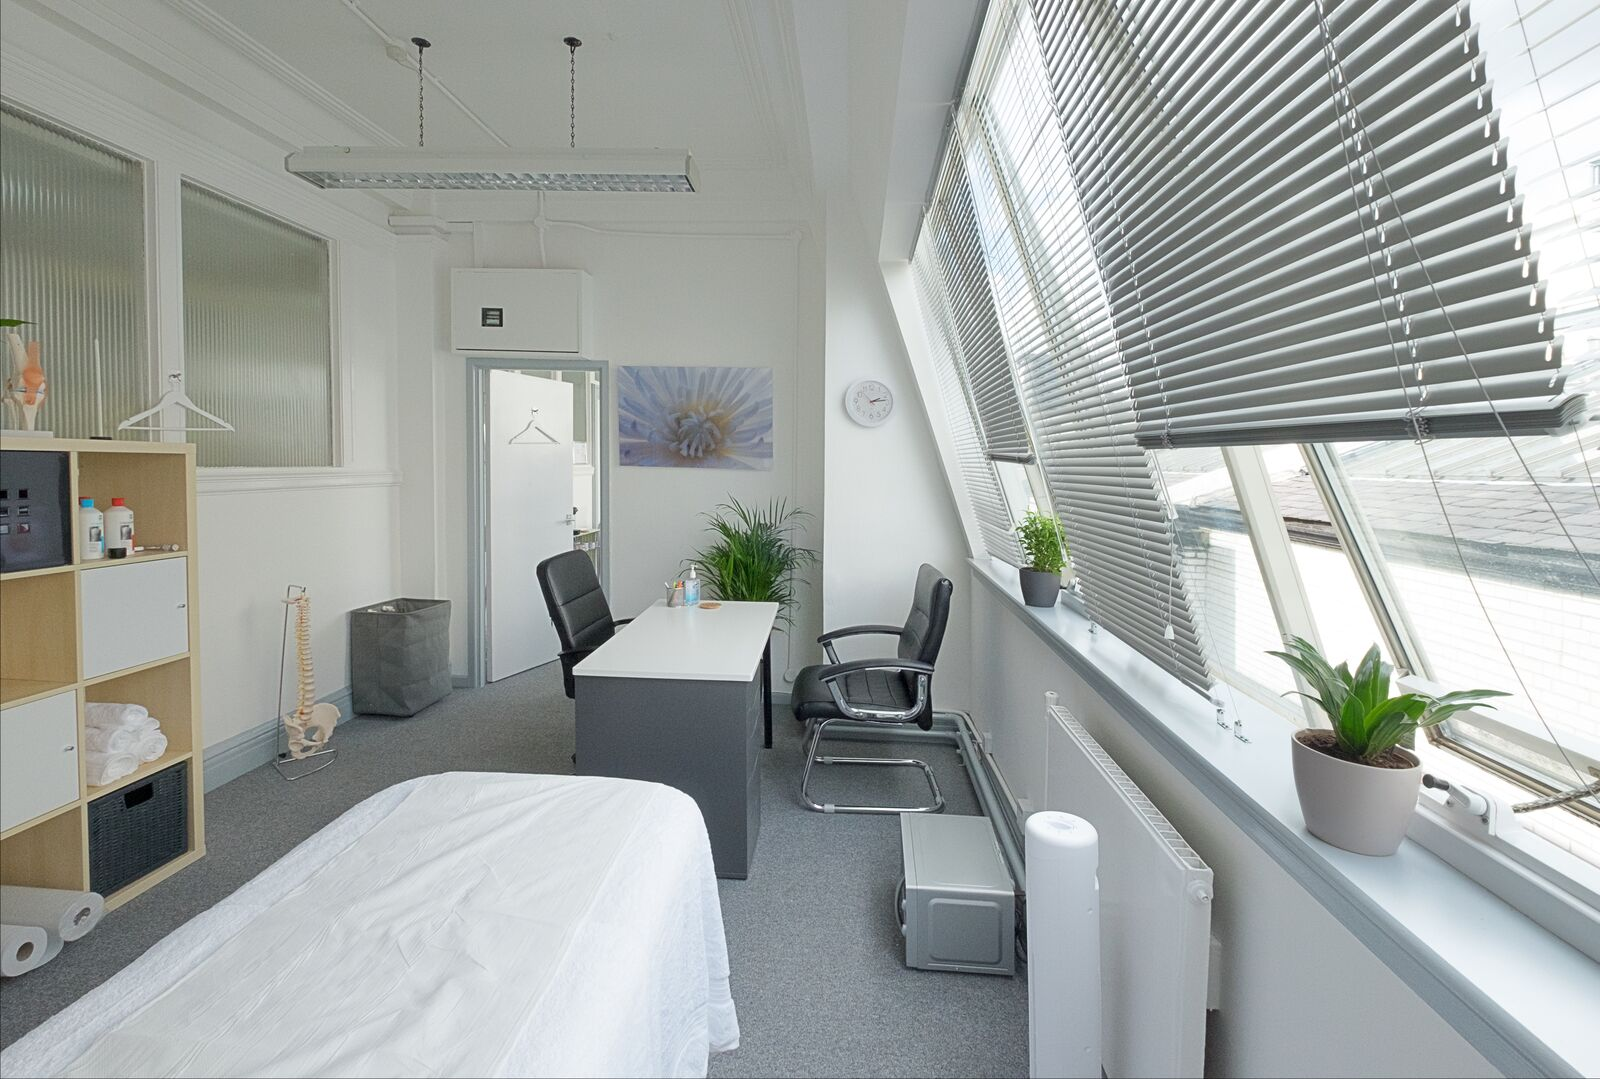 Total Restore - physio studio in Manchester treatment room